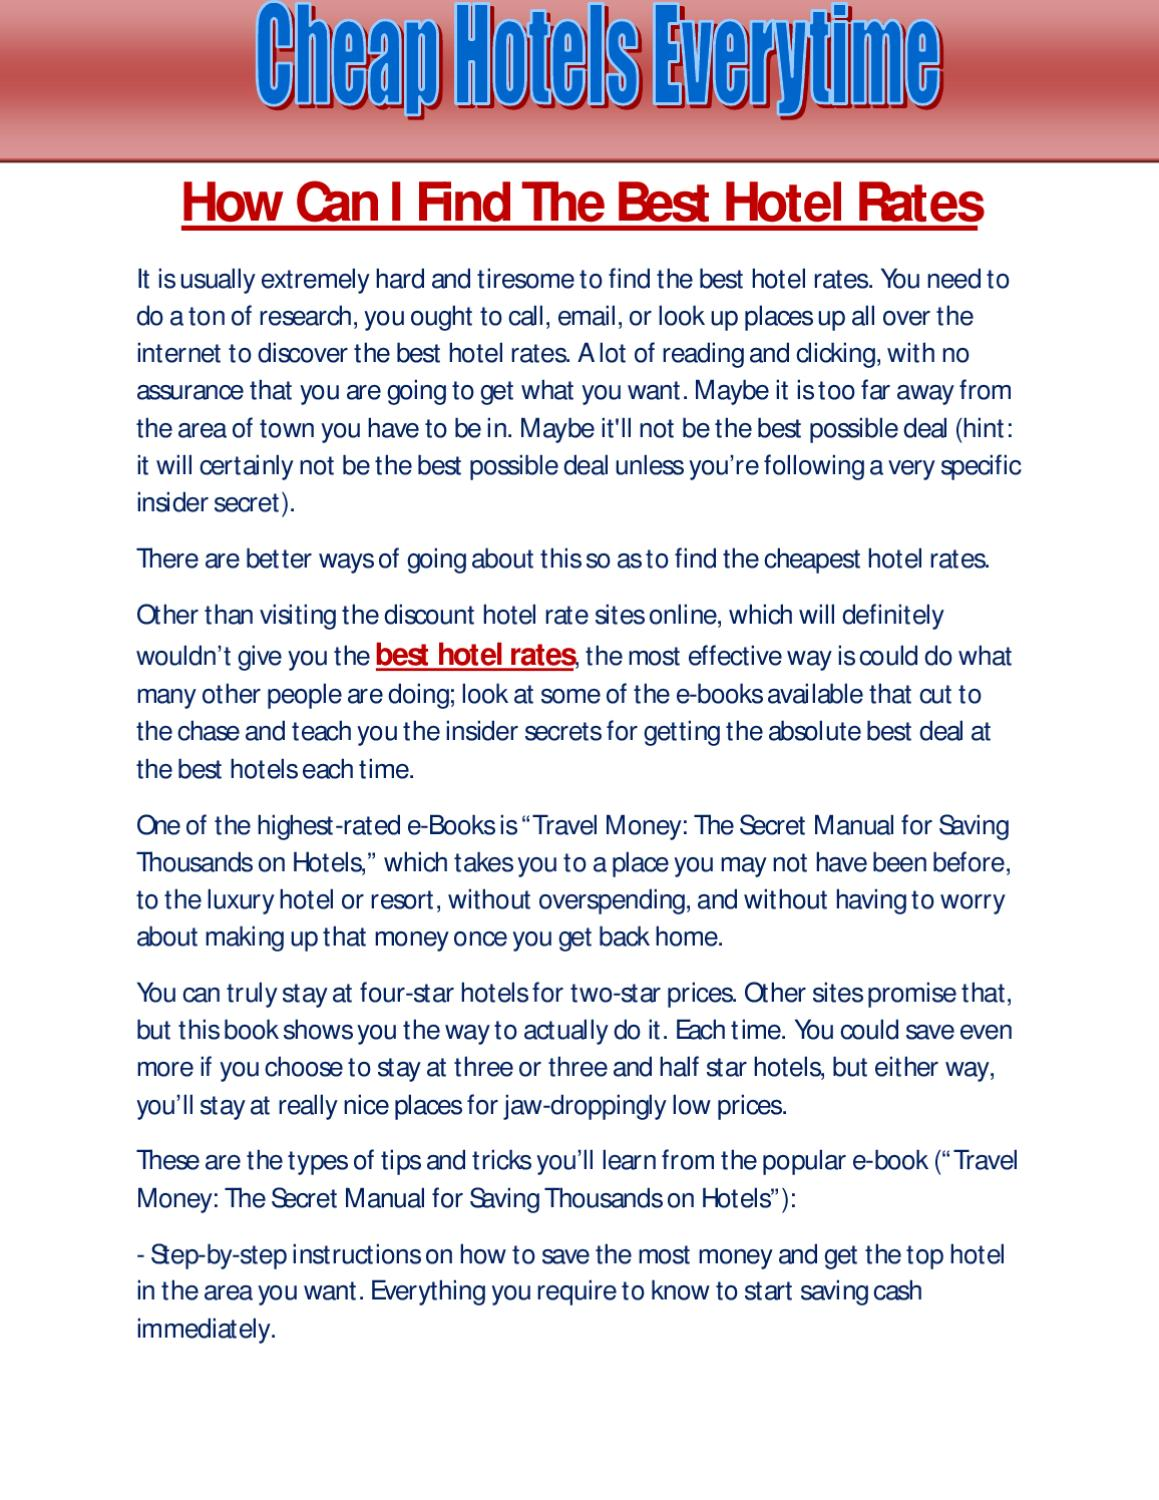 Best Hotel Rates By Luther Cale